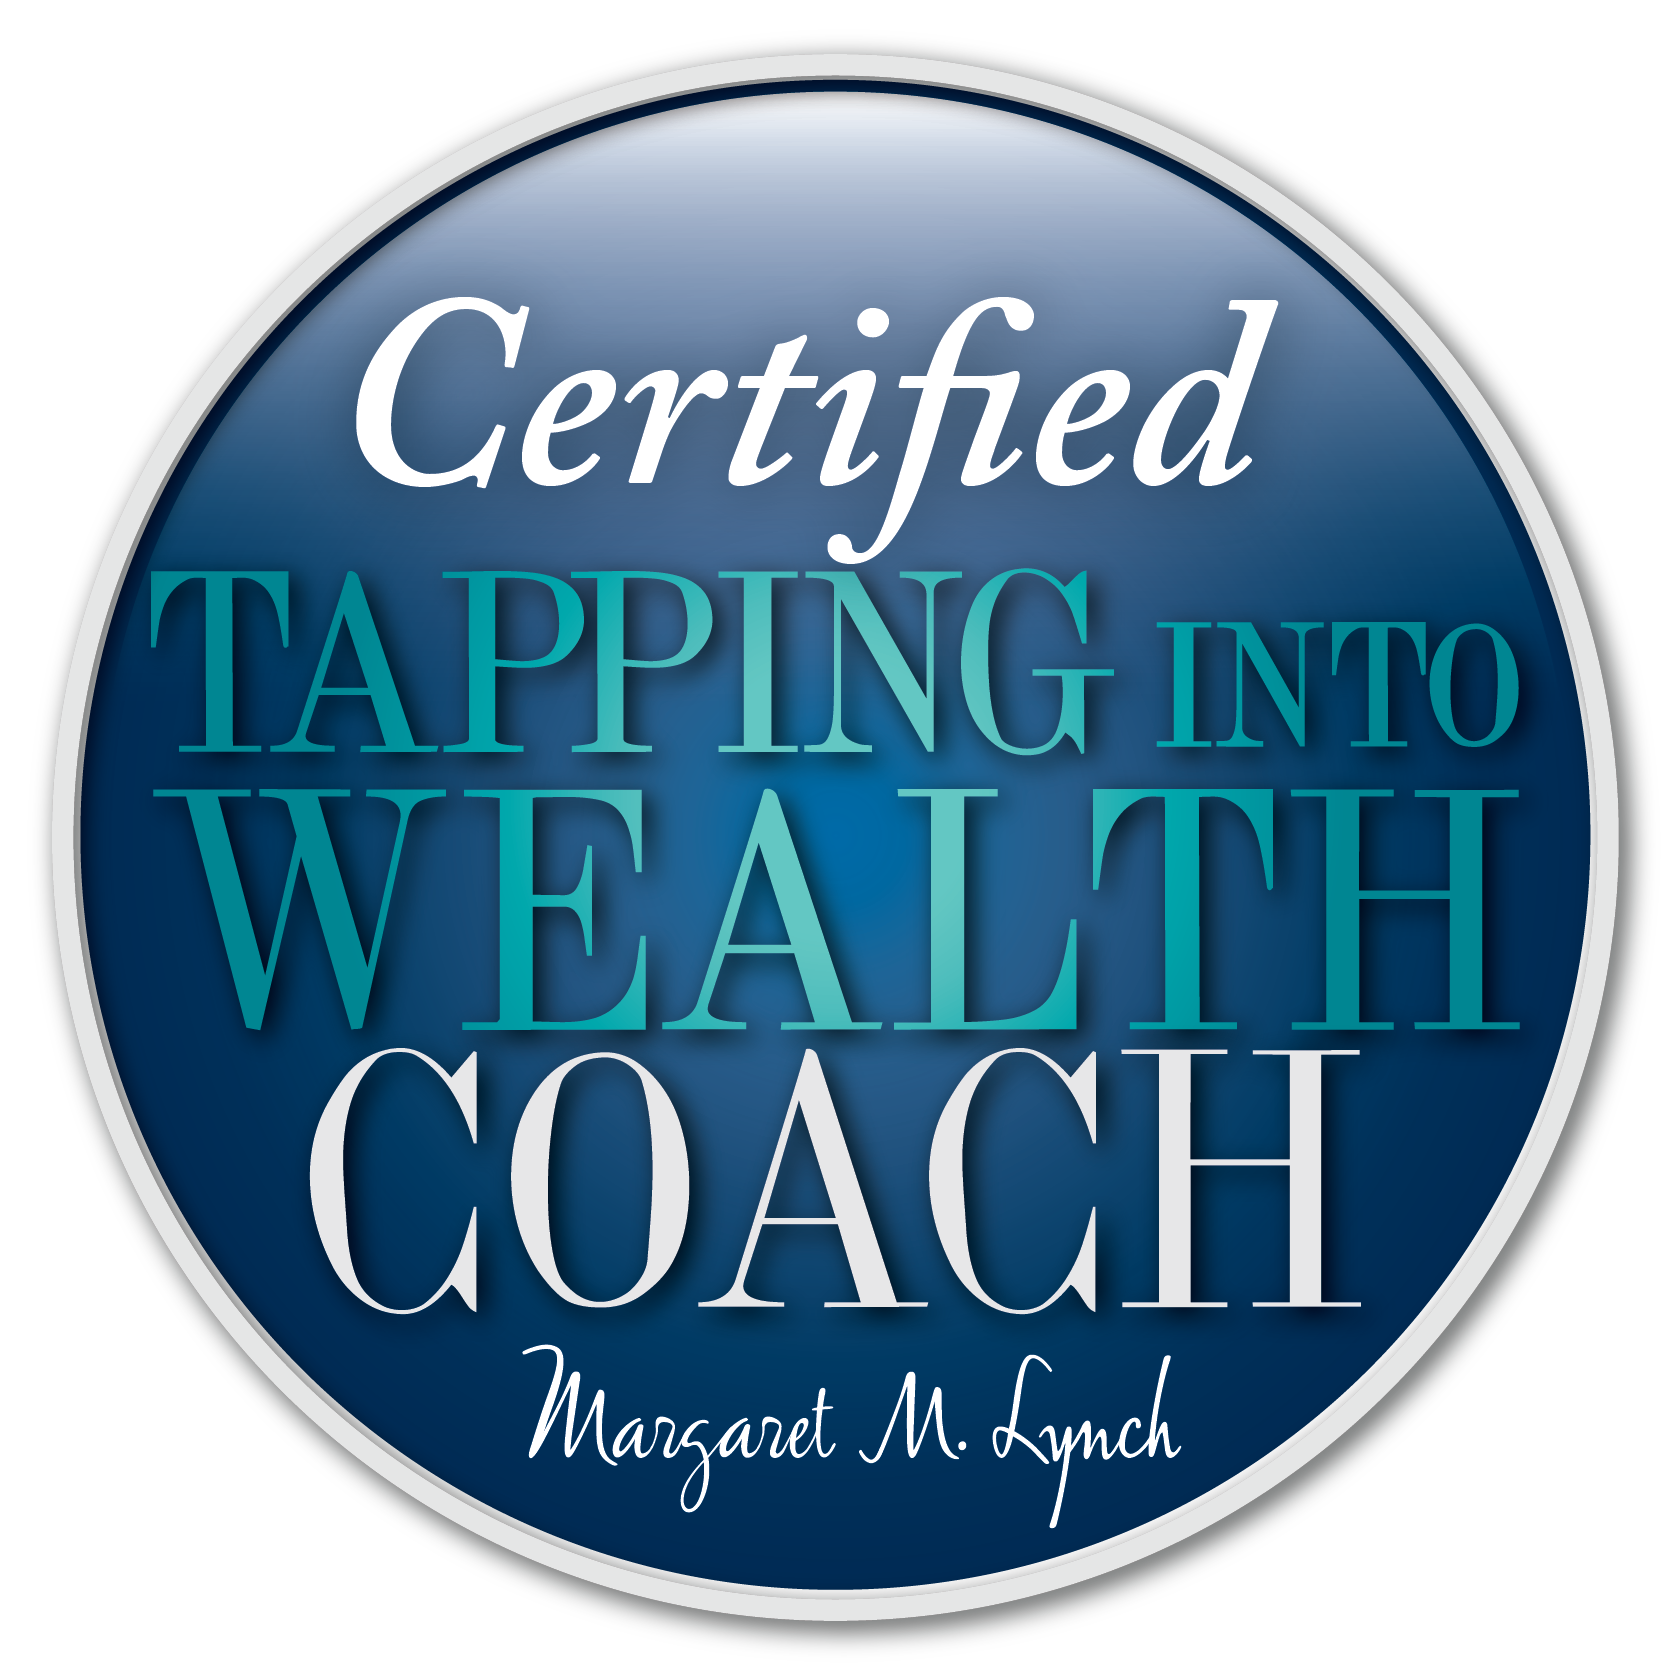 Certified Tapping Into Wealth Coach